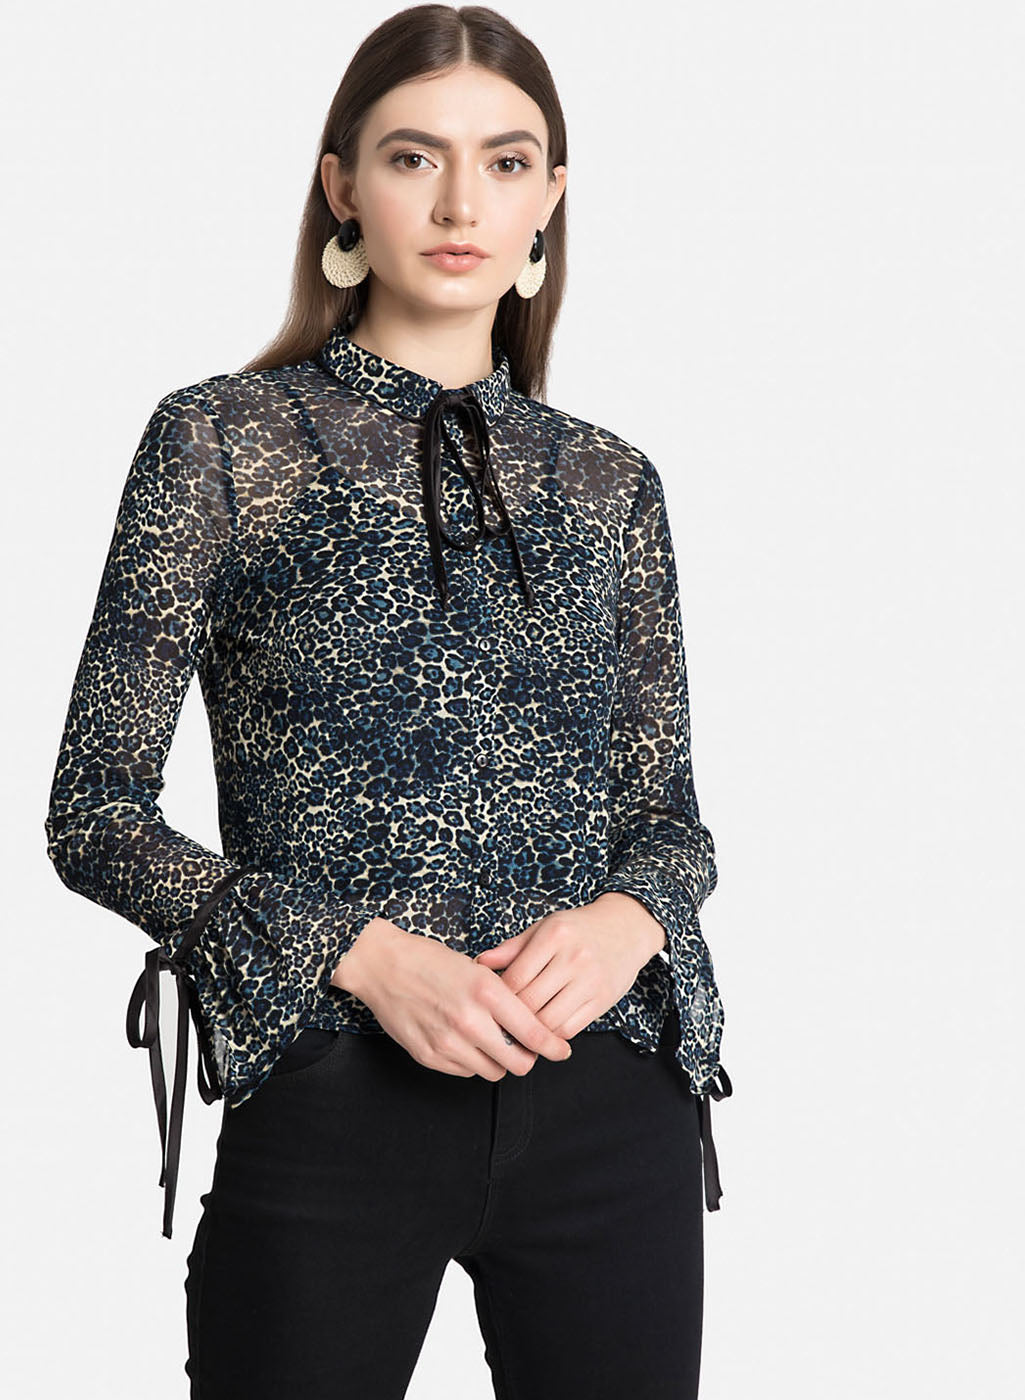 Blue Leo Print Shirt With Flared Sleeves (Additional 20% OFF)